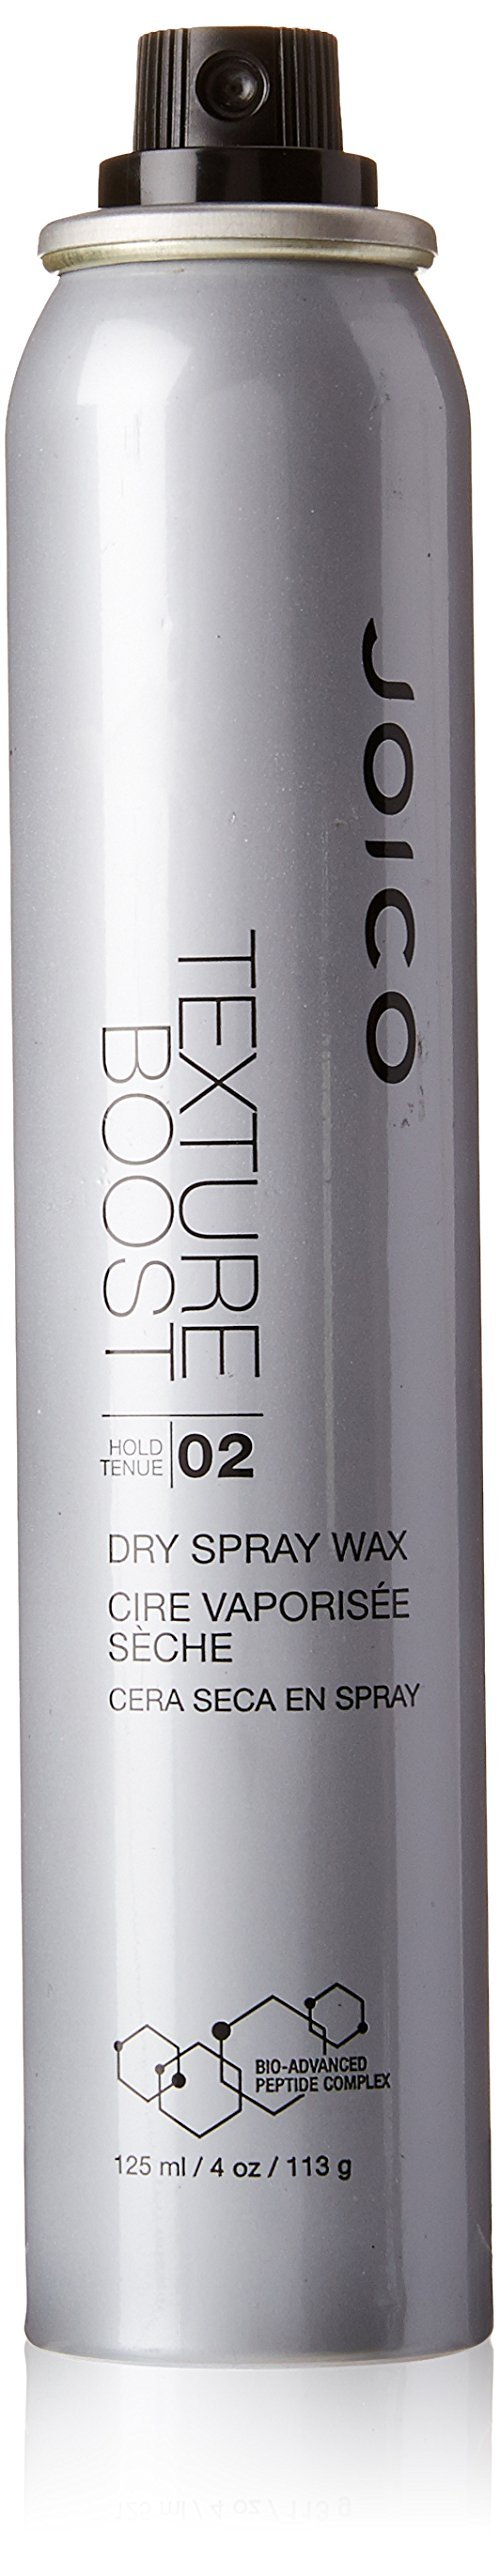 Joico Dry Spray Wax, Texture Boost, 4 Ounce